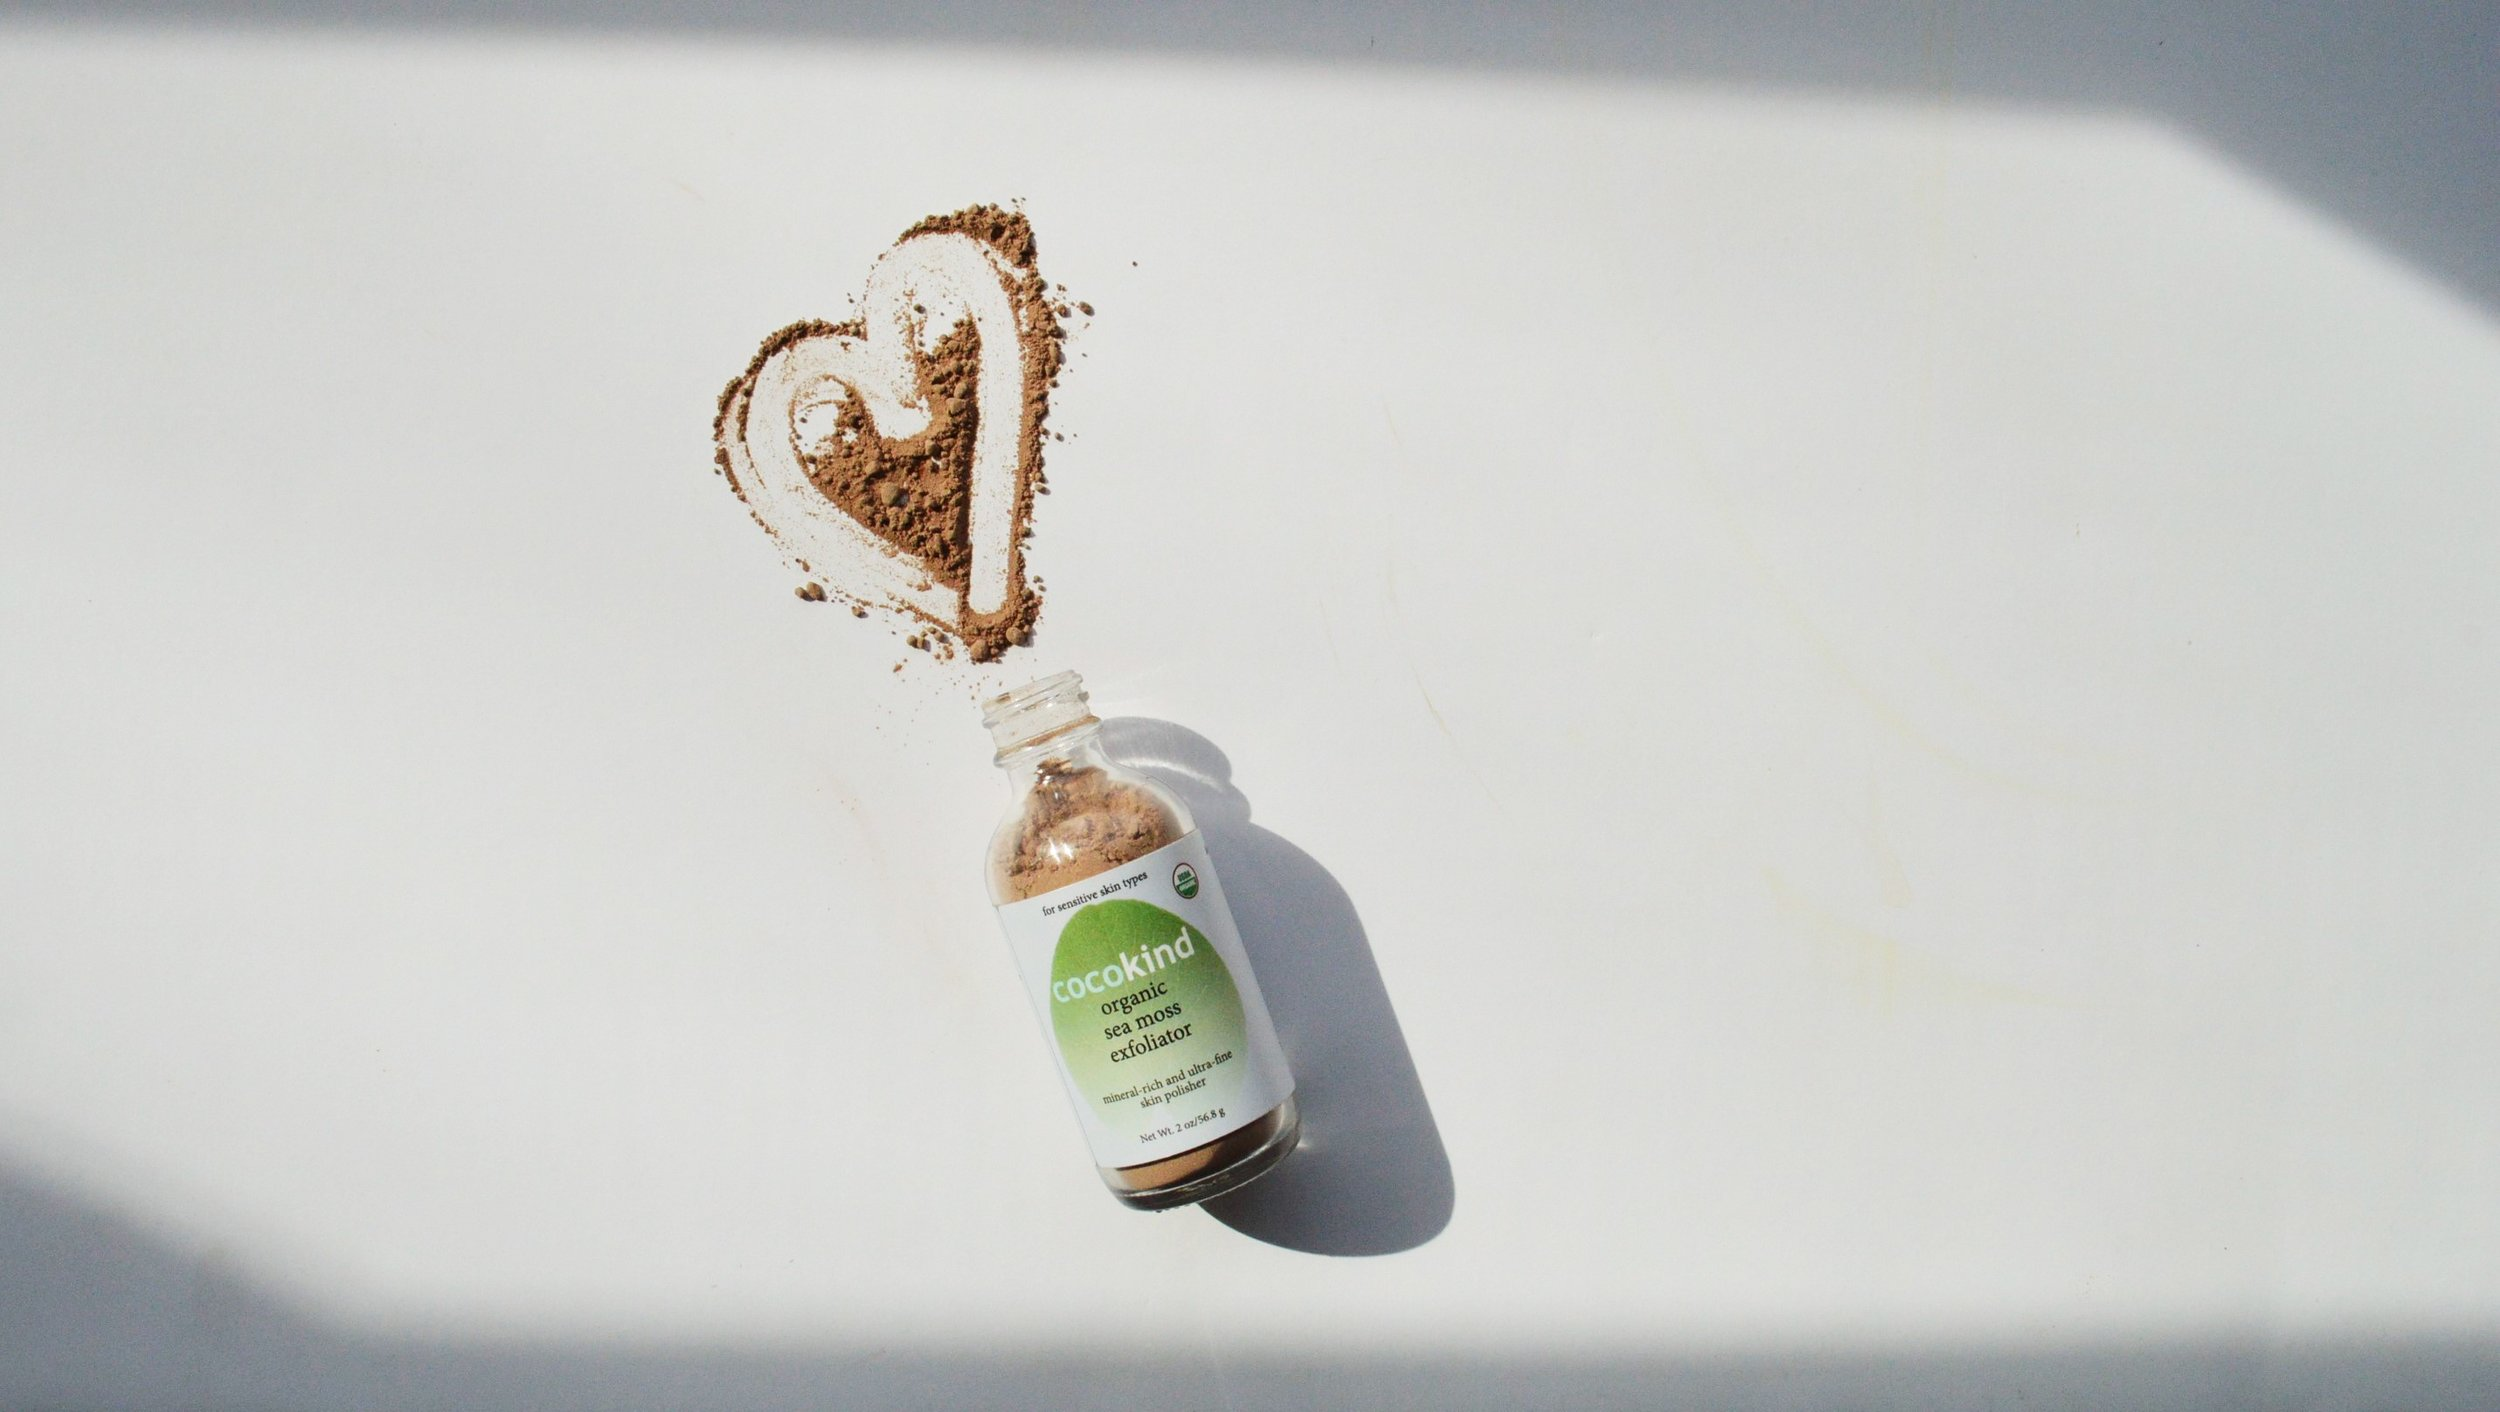 How to Exfoliate with the Cocokind Organic Sea Moss Exfoliator